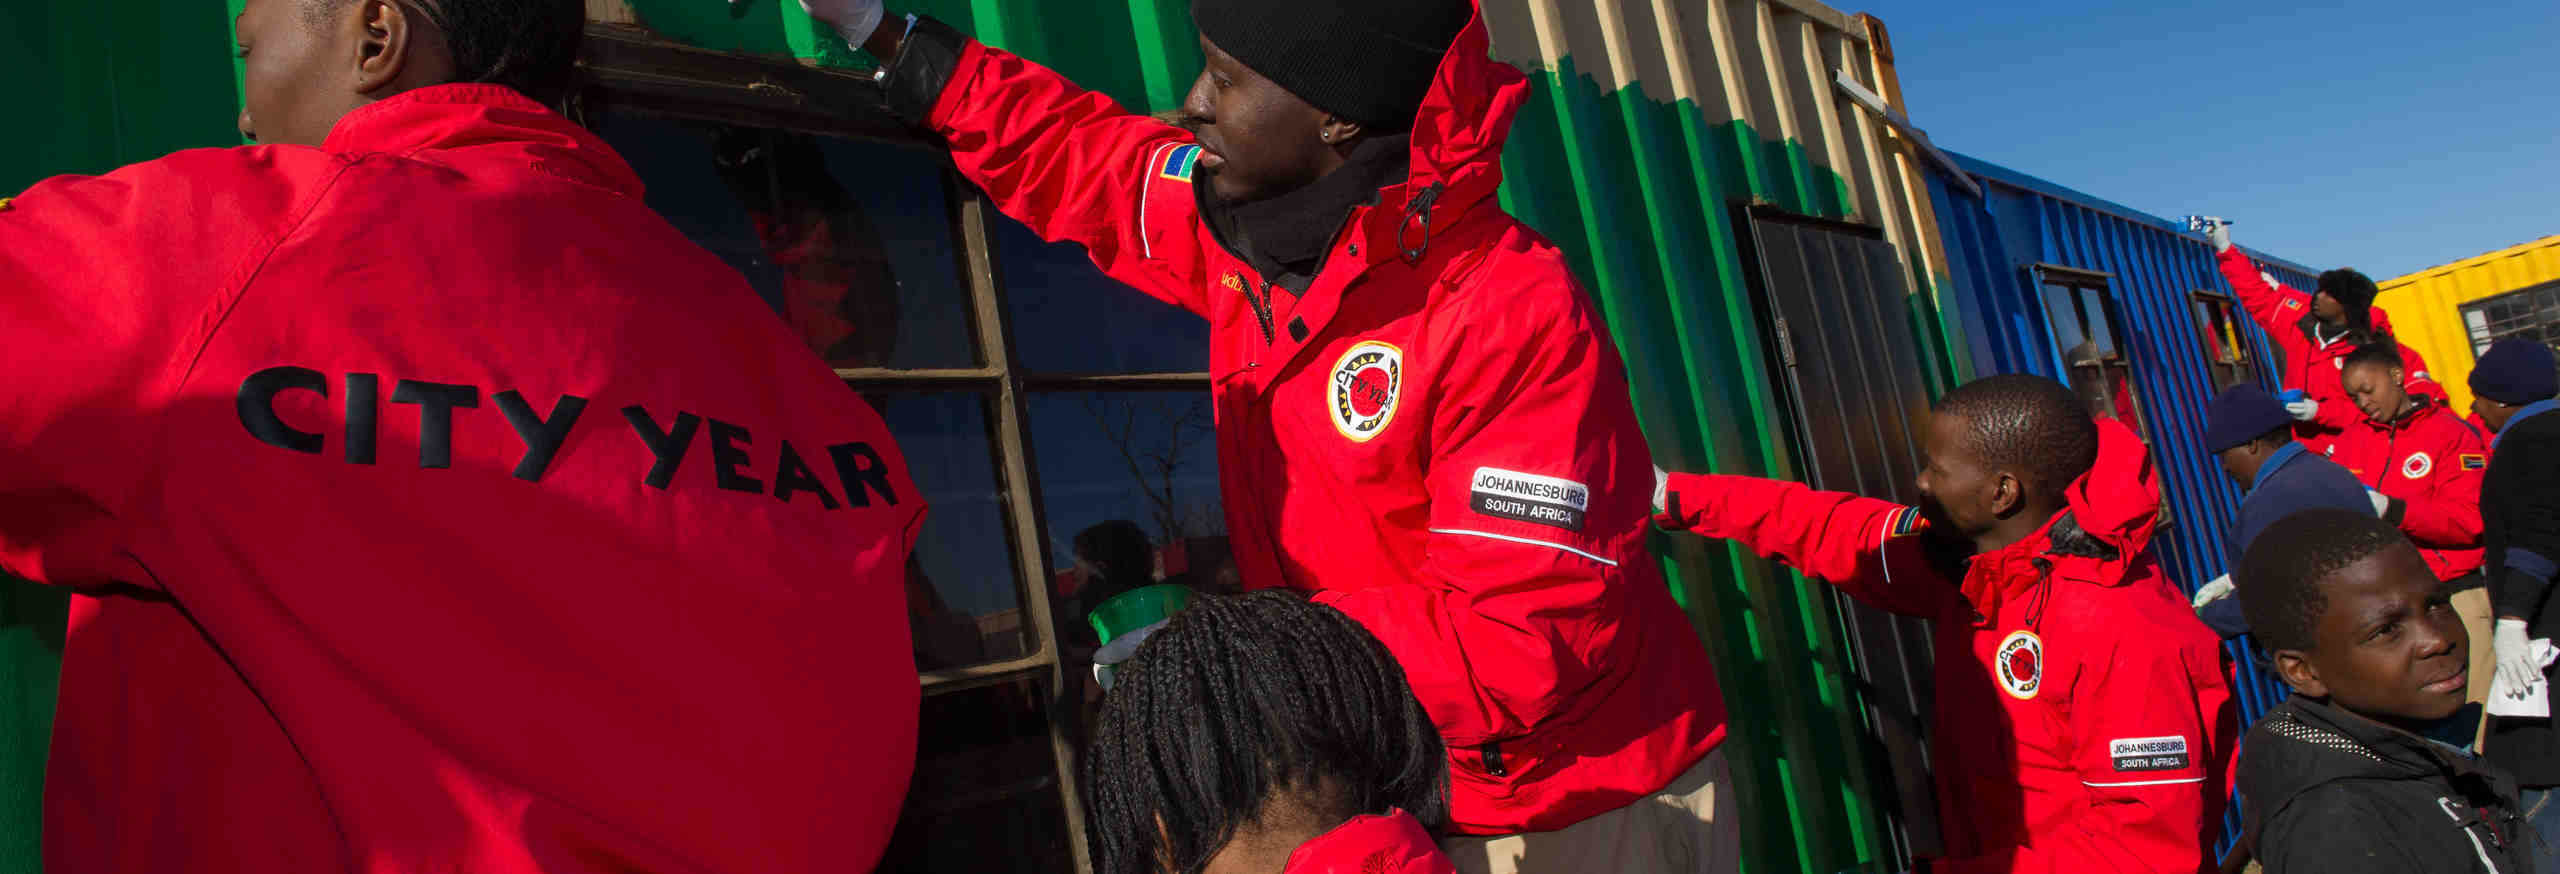 Photo of The truth about City Year: exploiting idealism